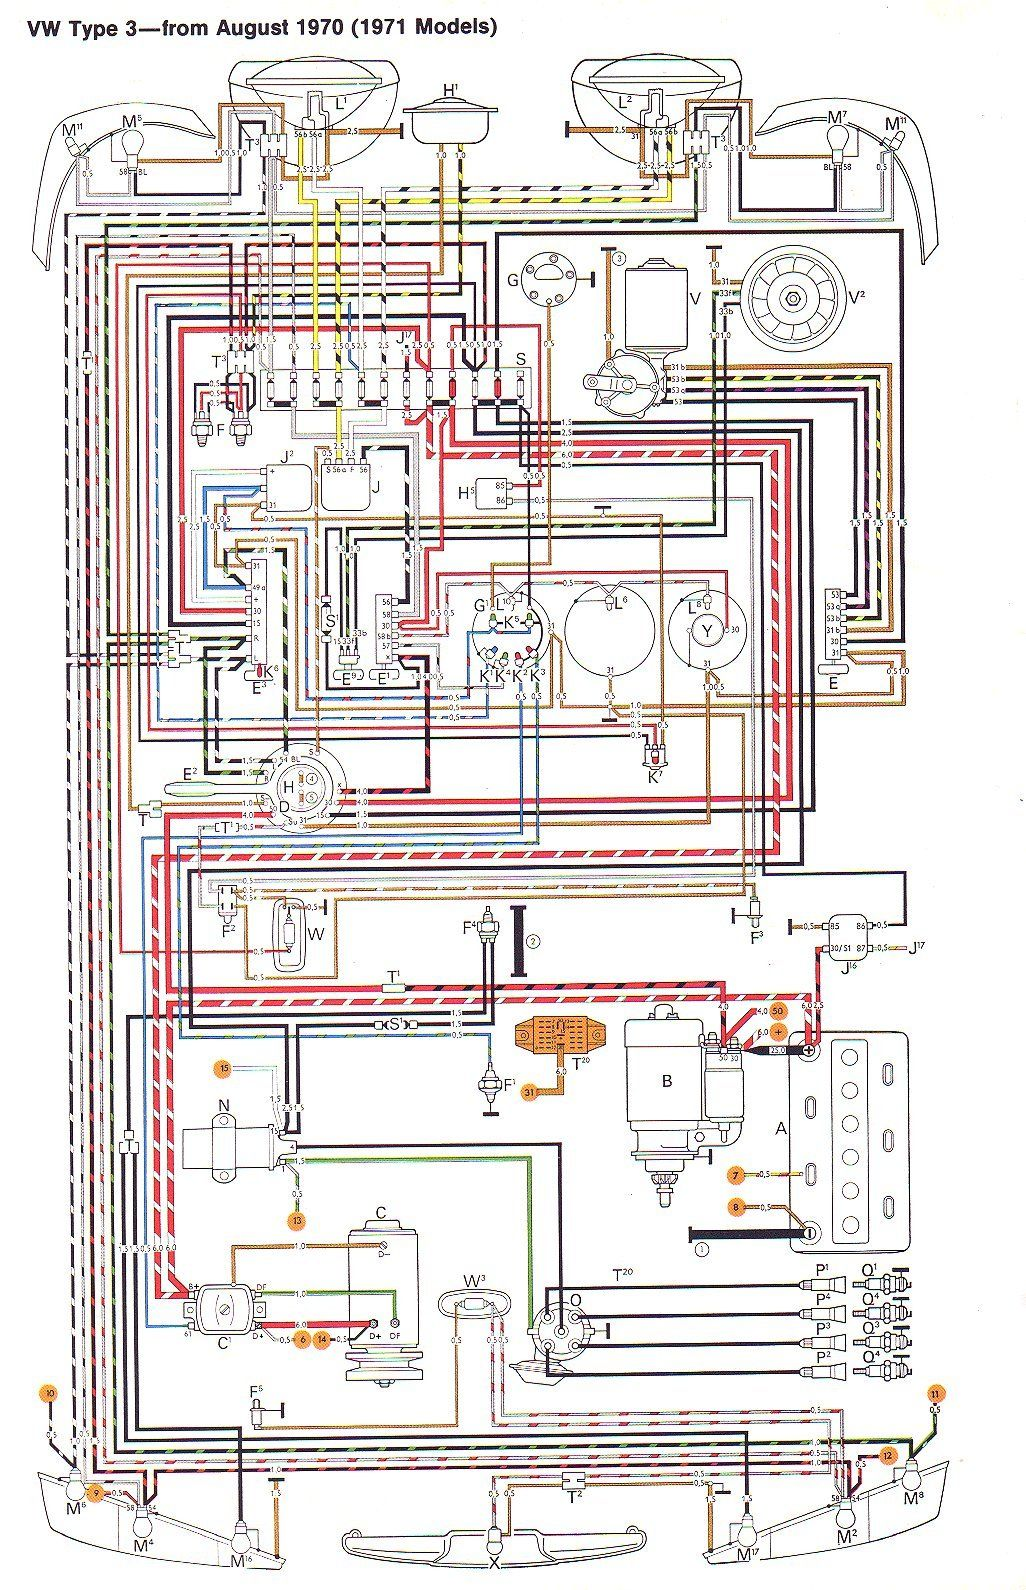 71 vw t3 wiring diagram ruthie pinterest cars vw beetles and wire rh  pinterest com Car Interior Diagram Car Interior Diagram